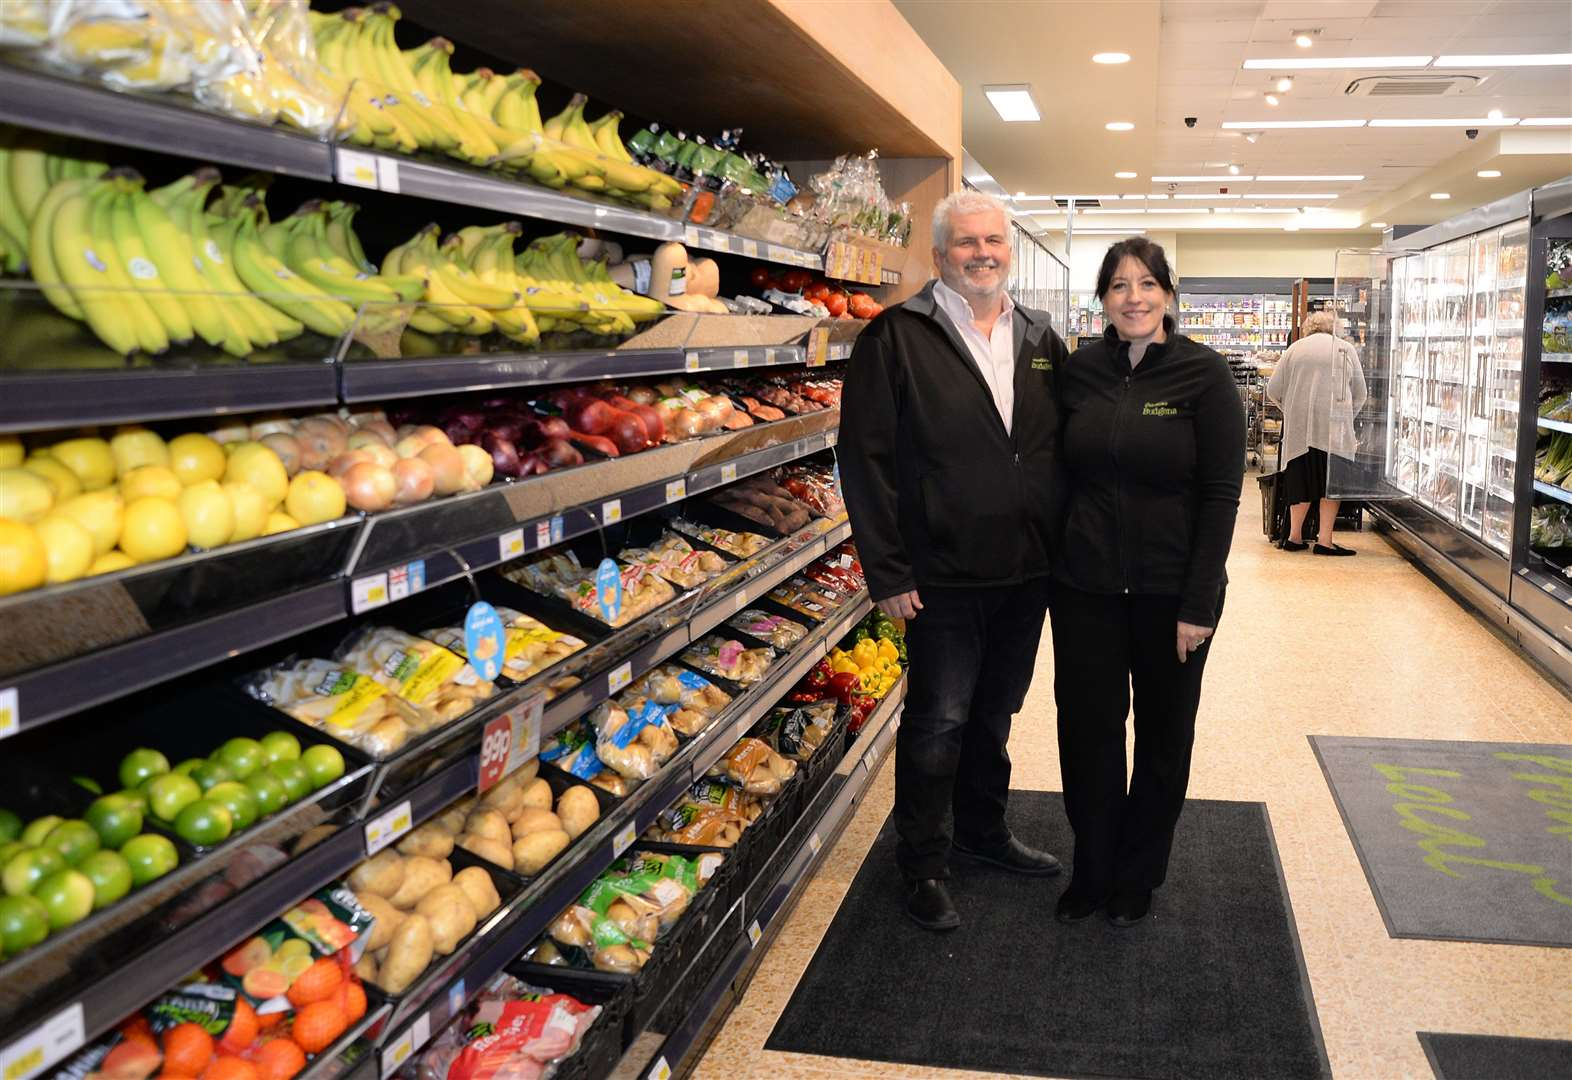 PICTURES: Check out the new-look Budgens after its £300,000 refurbishment